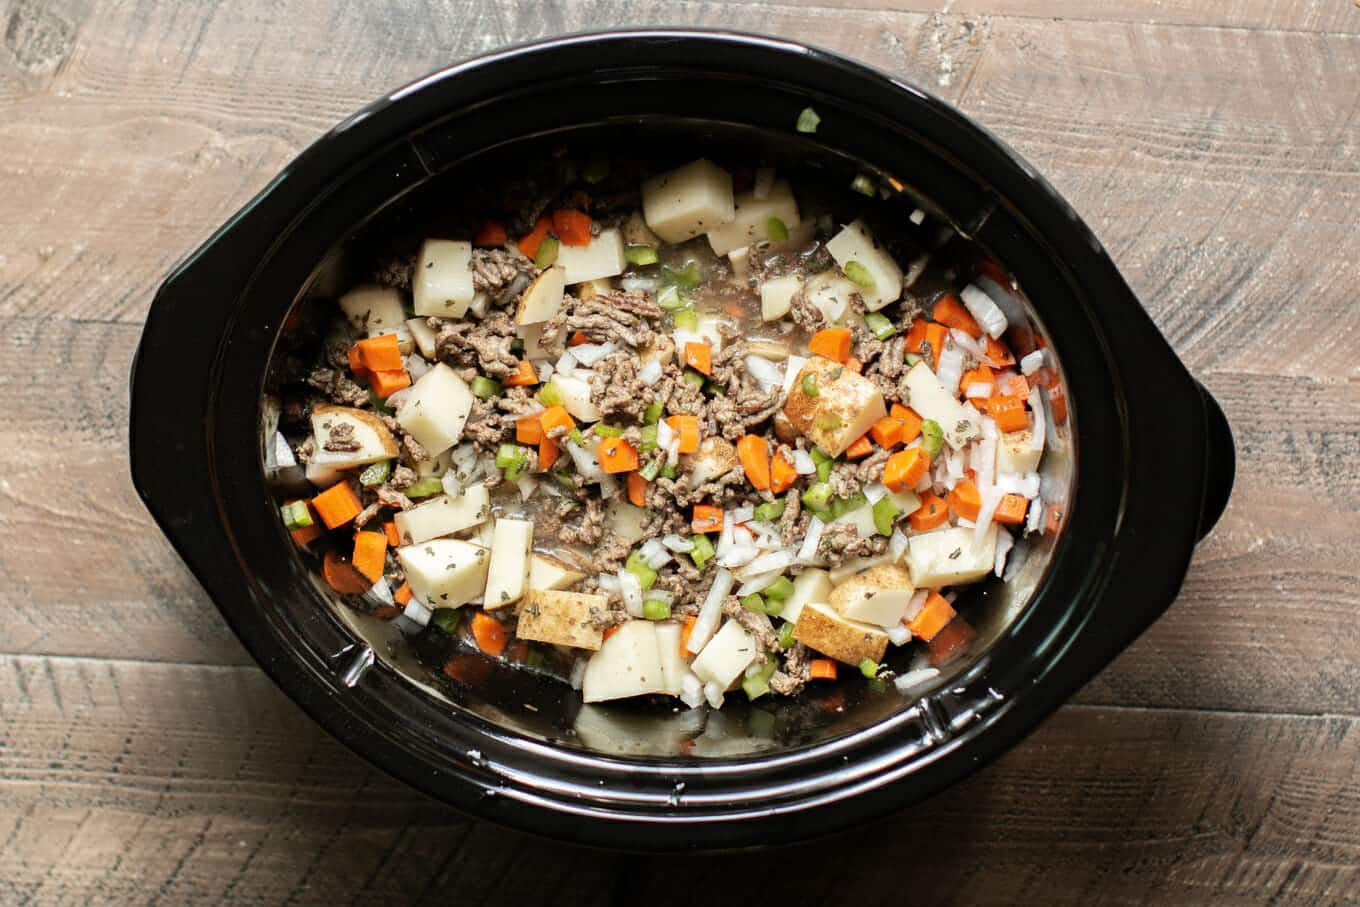 potatoes, hamburger, carrots, celery and chicken broth in a slow cooker.